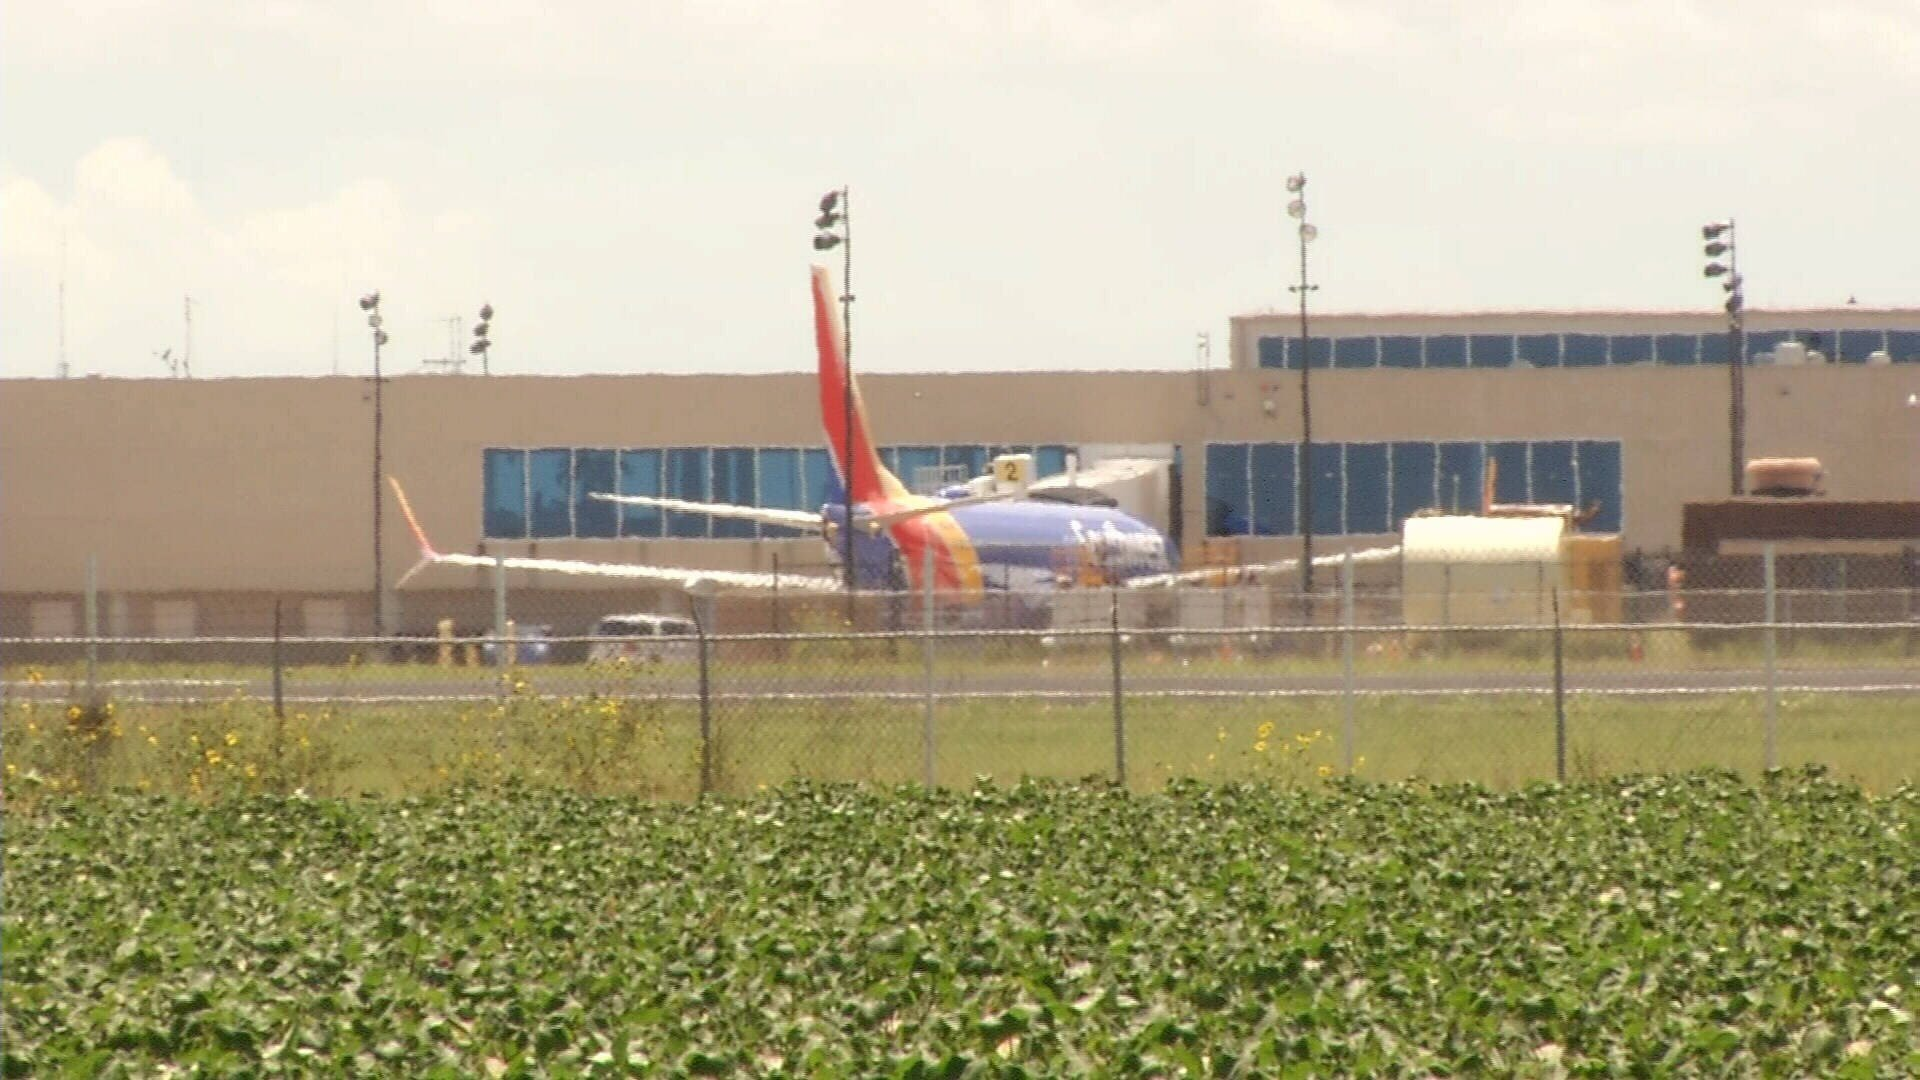 A diverted Southwest Airlines flight at the gates of Corpus Christi International Airport. (KRIS)